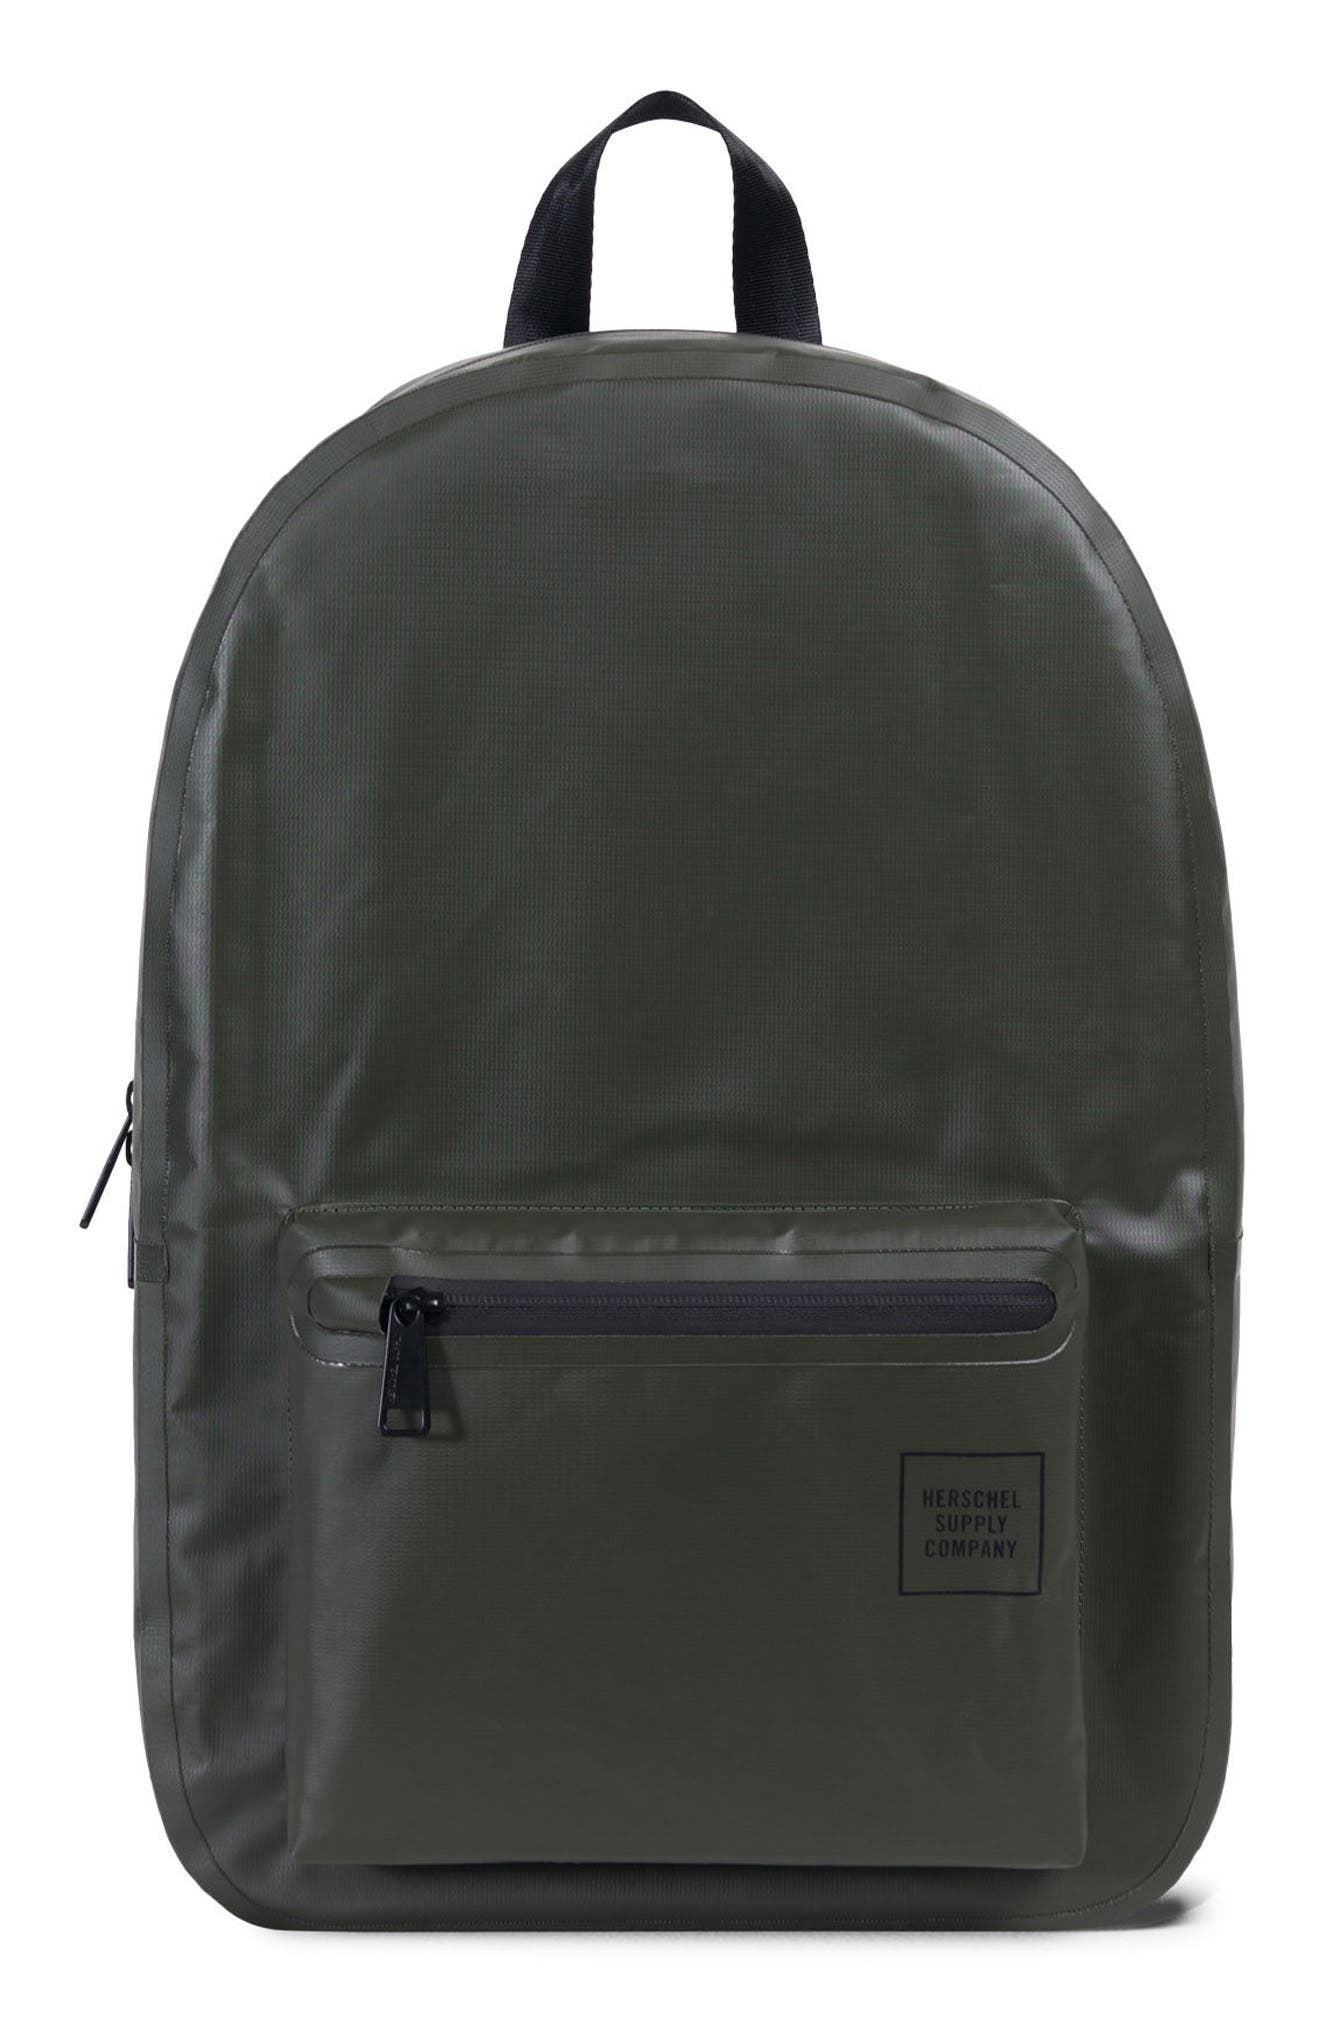 Alternate Image 1 Selected - Herschel Supply Co. Settlement Studio Backpack